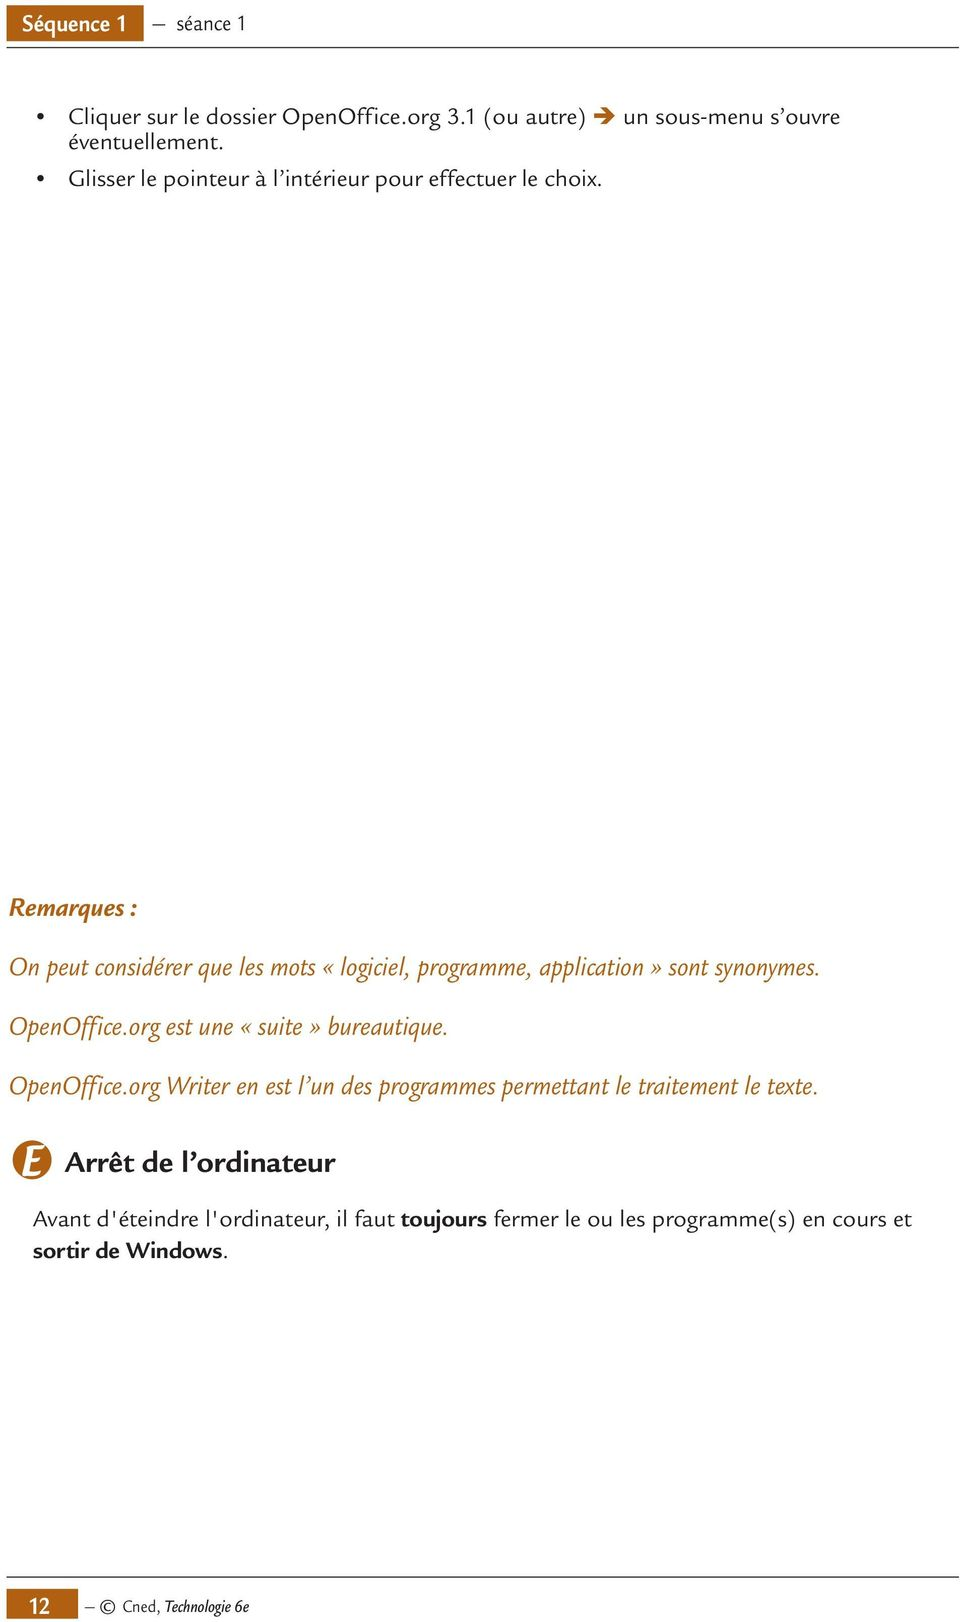 Remarques : On peut considérer que les mots «logiciel, programme, application» sont synonymes. OpenOffice.